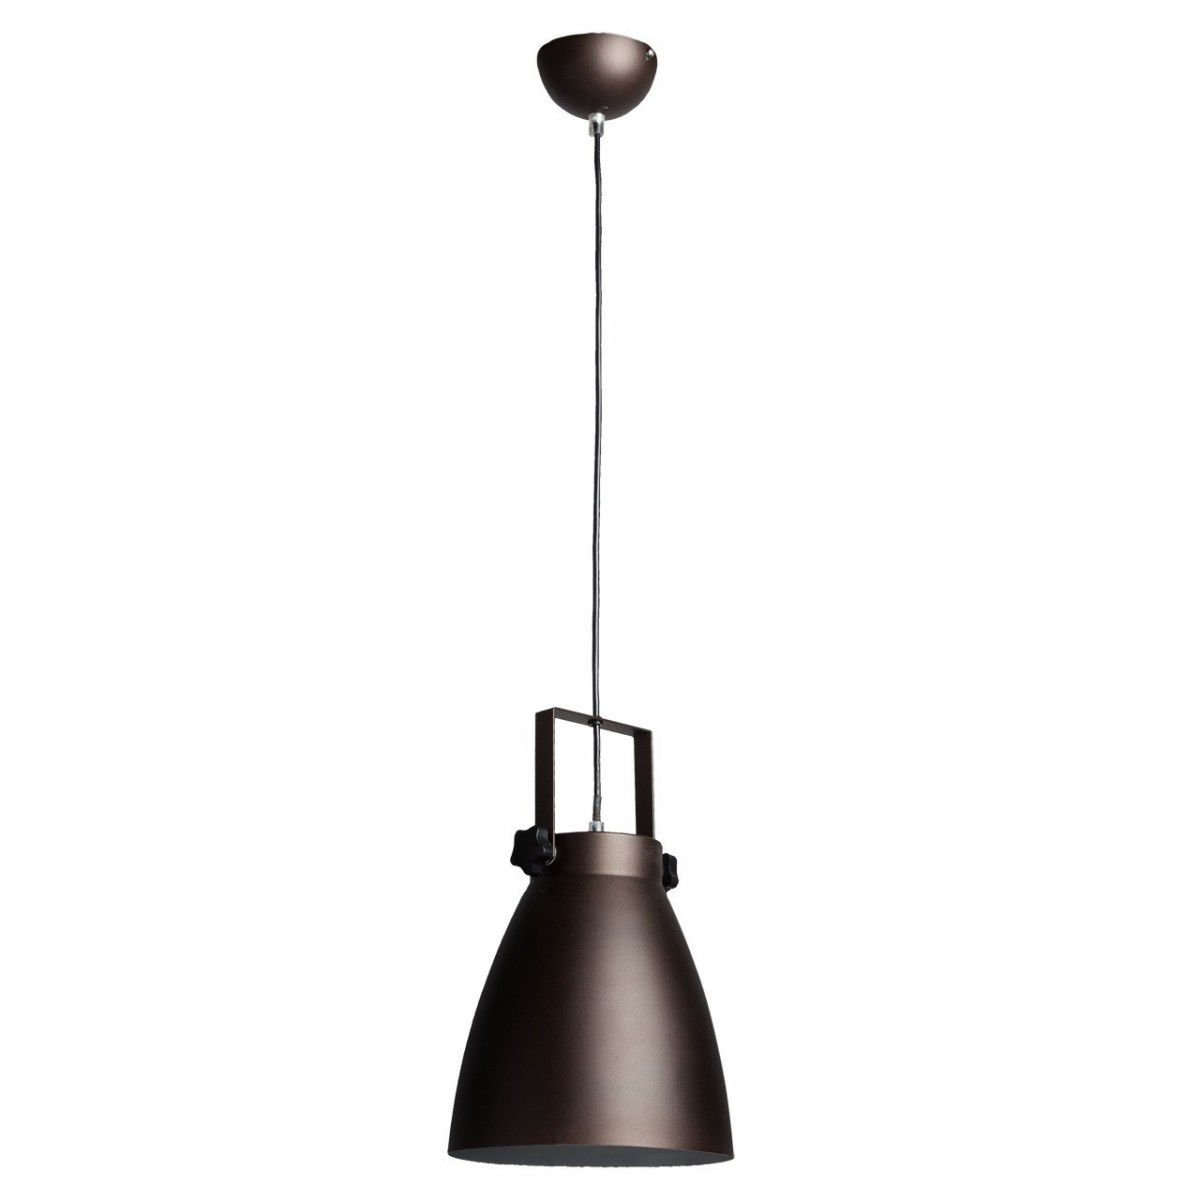 Suspension style industriel ovale m tal laqu marron mate - Suspension style industriel ...